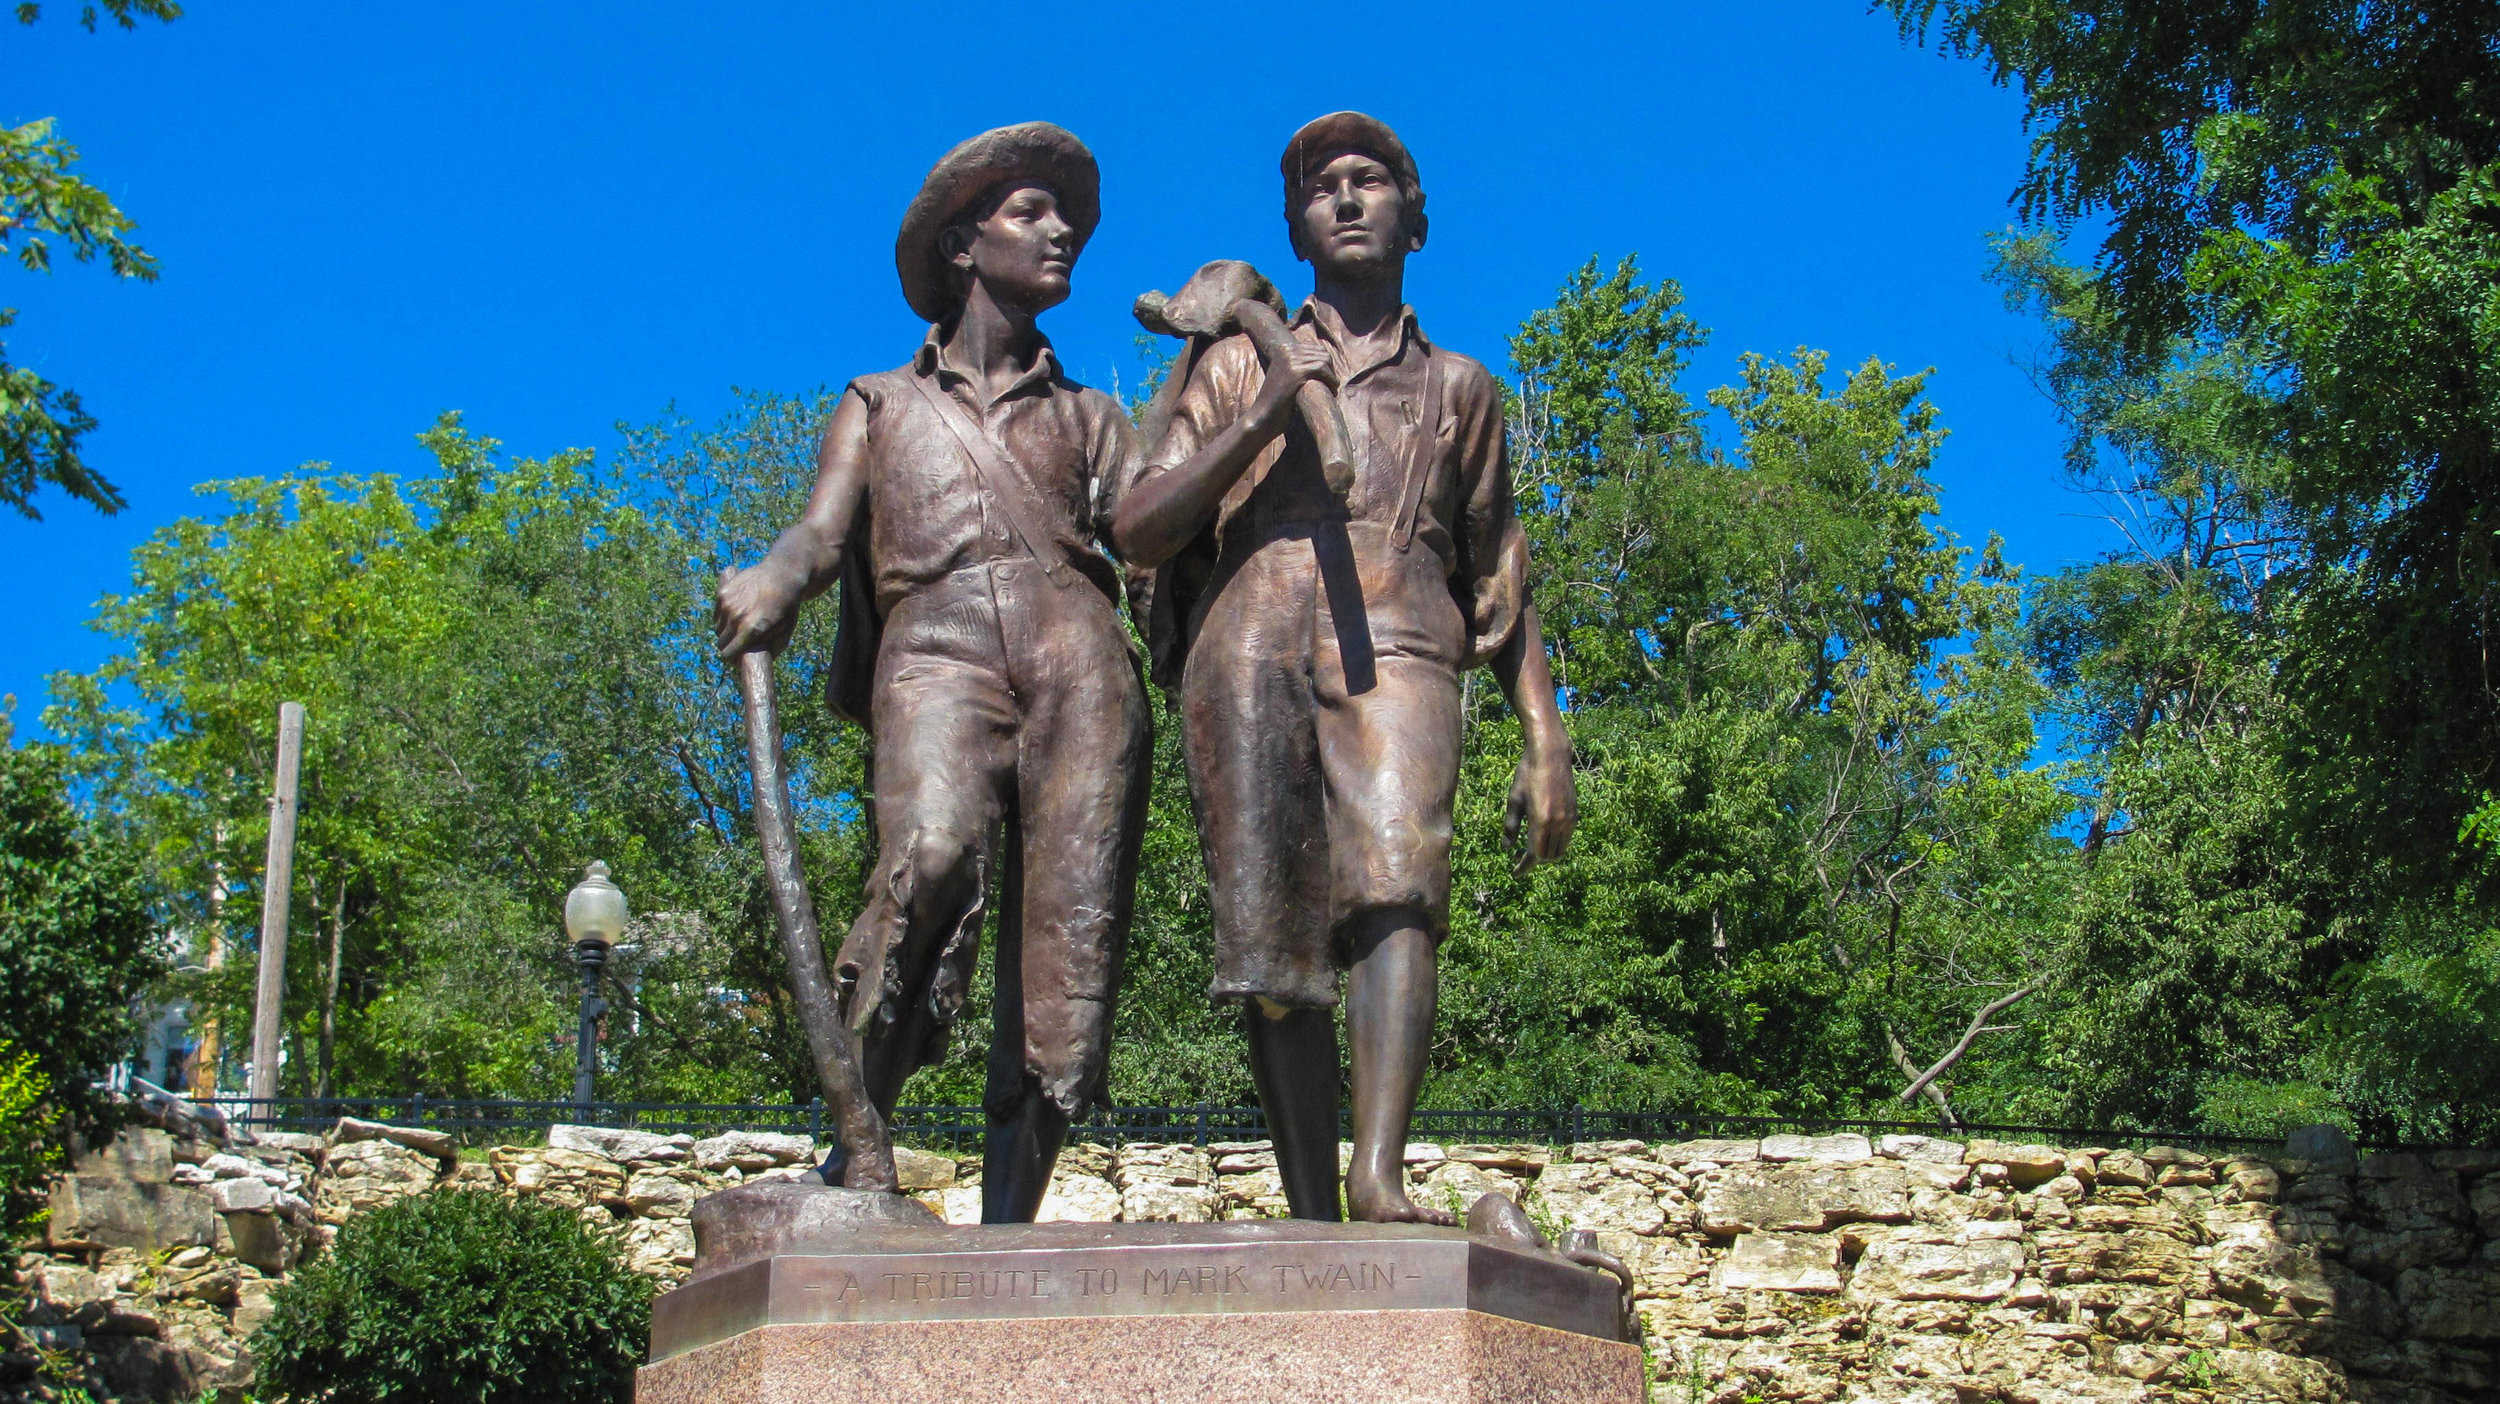 Tom and Huck Statue Hannibal, Missouri